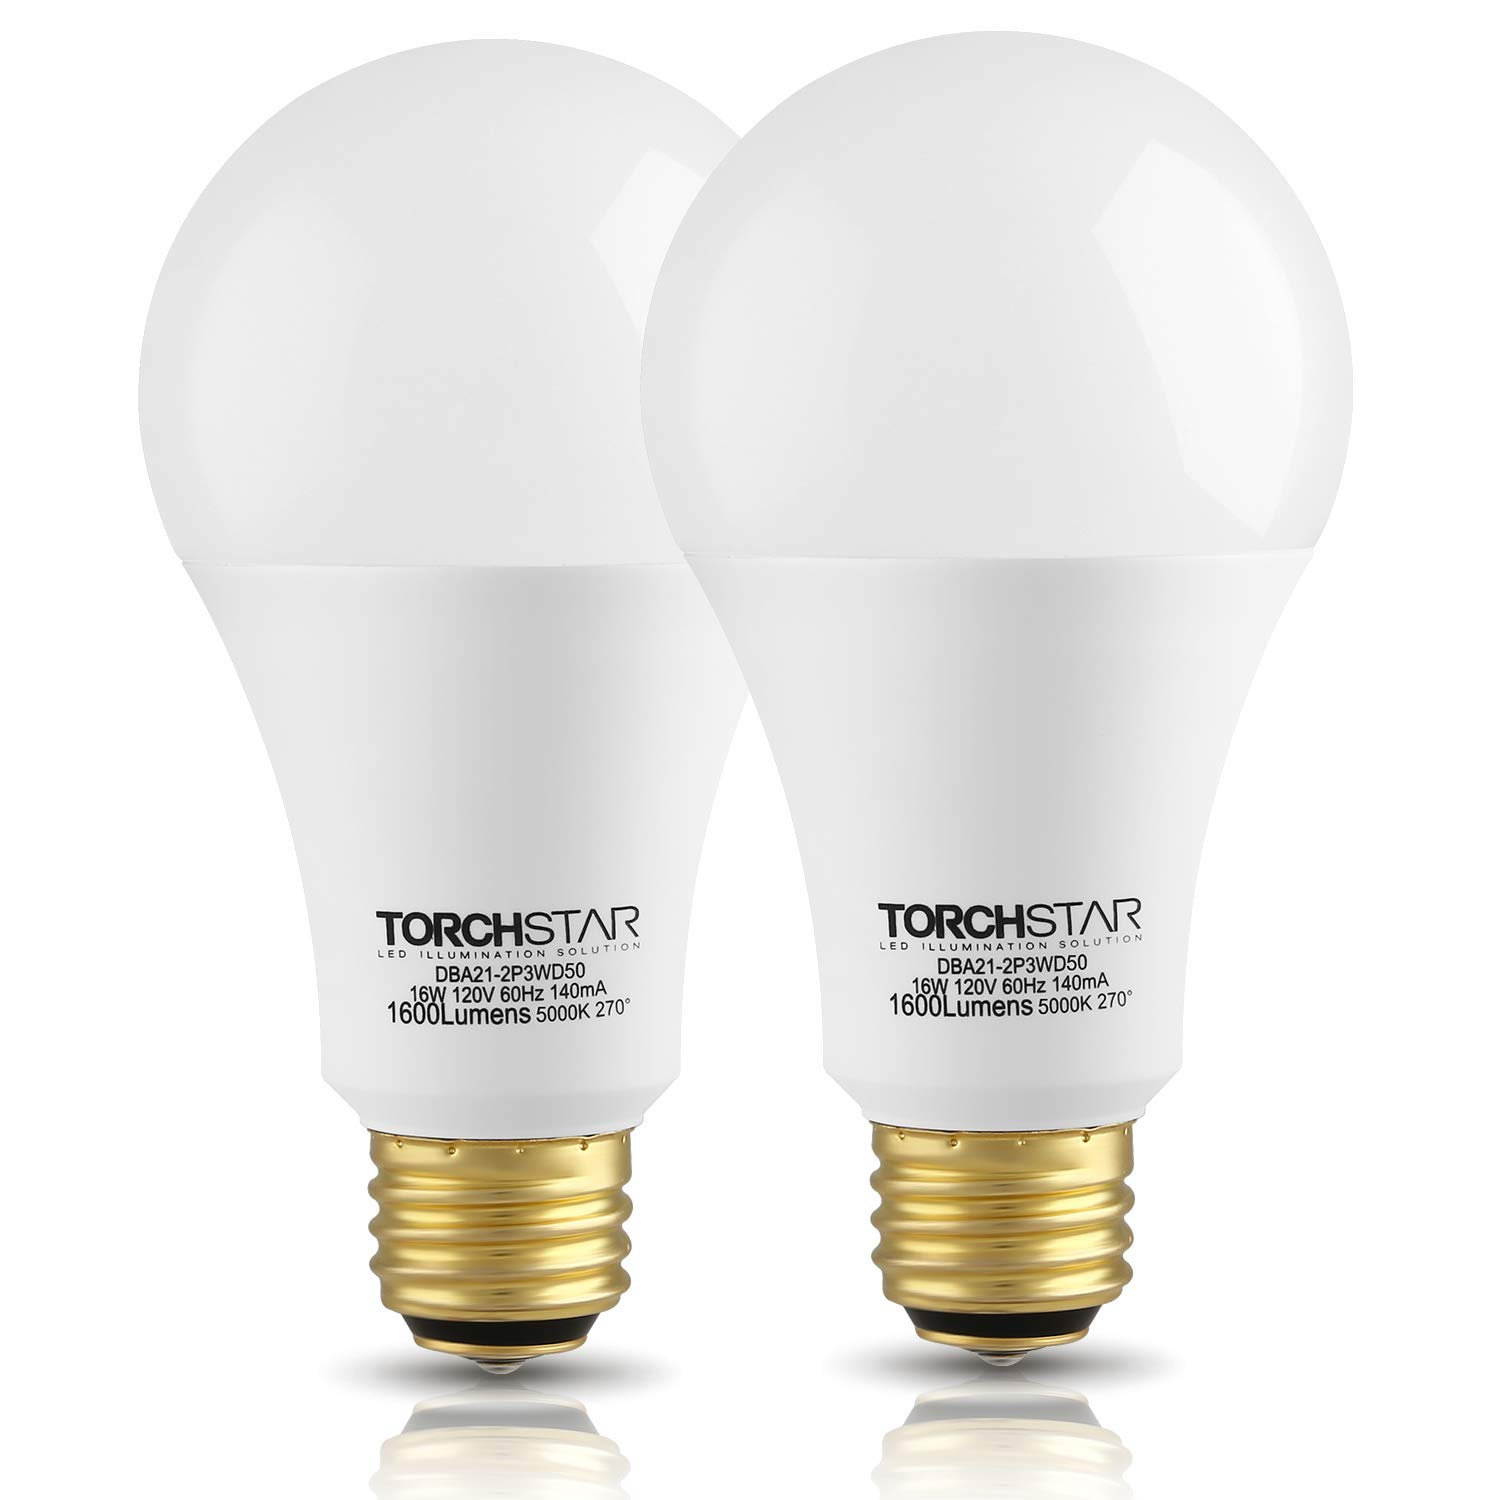 TORCHSTAR 3-Way 40/60/100W Equivalent LED A21 Light Bulb, Energy Star + UL-Listed,5000K Daylight, E26 Medium Screw Base, for Table Lamp, Bedside Lamp, Pack of 2